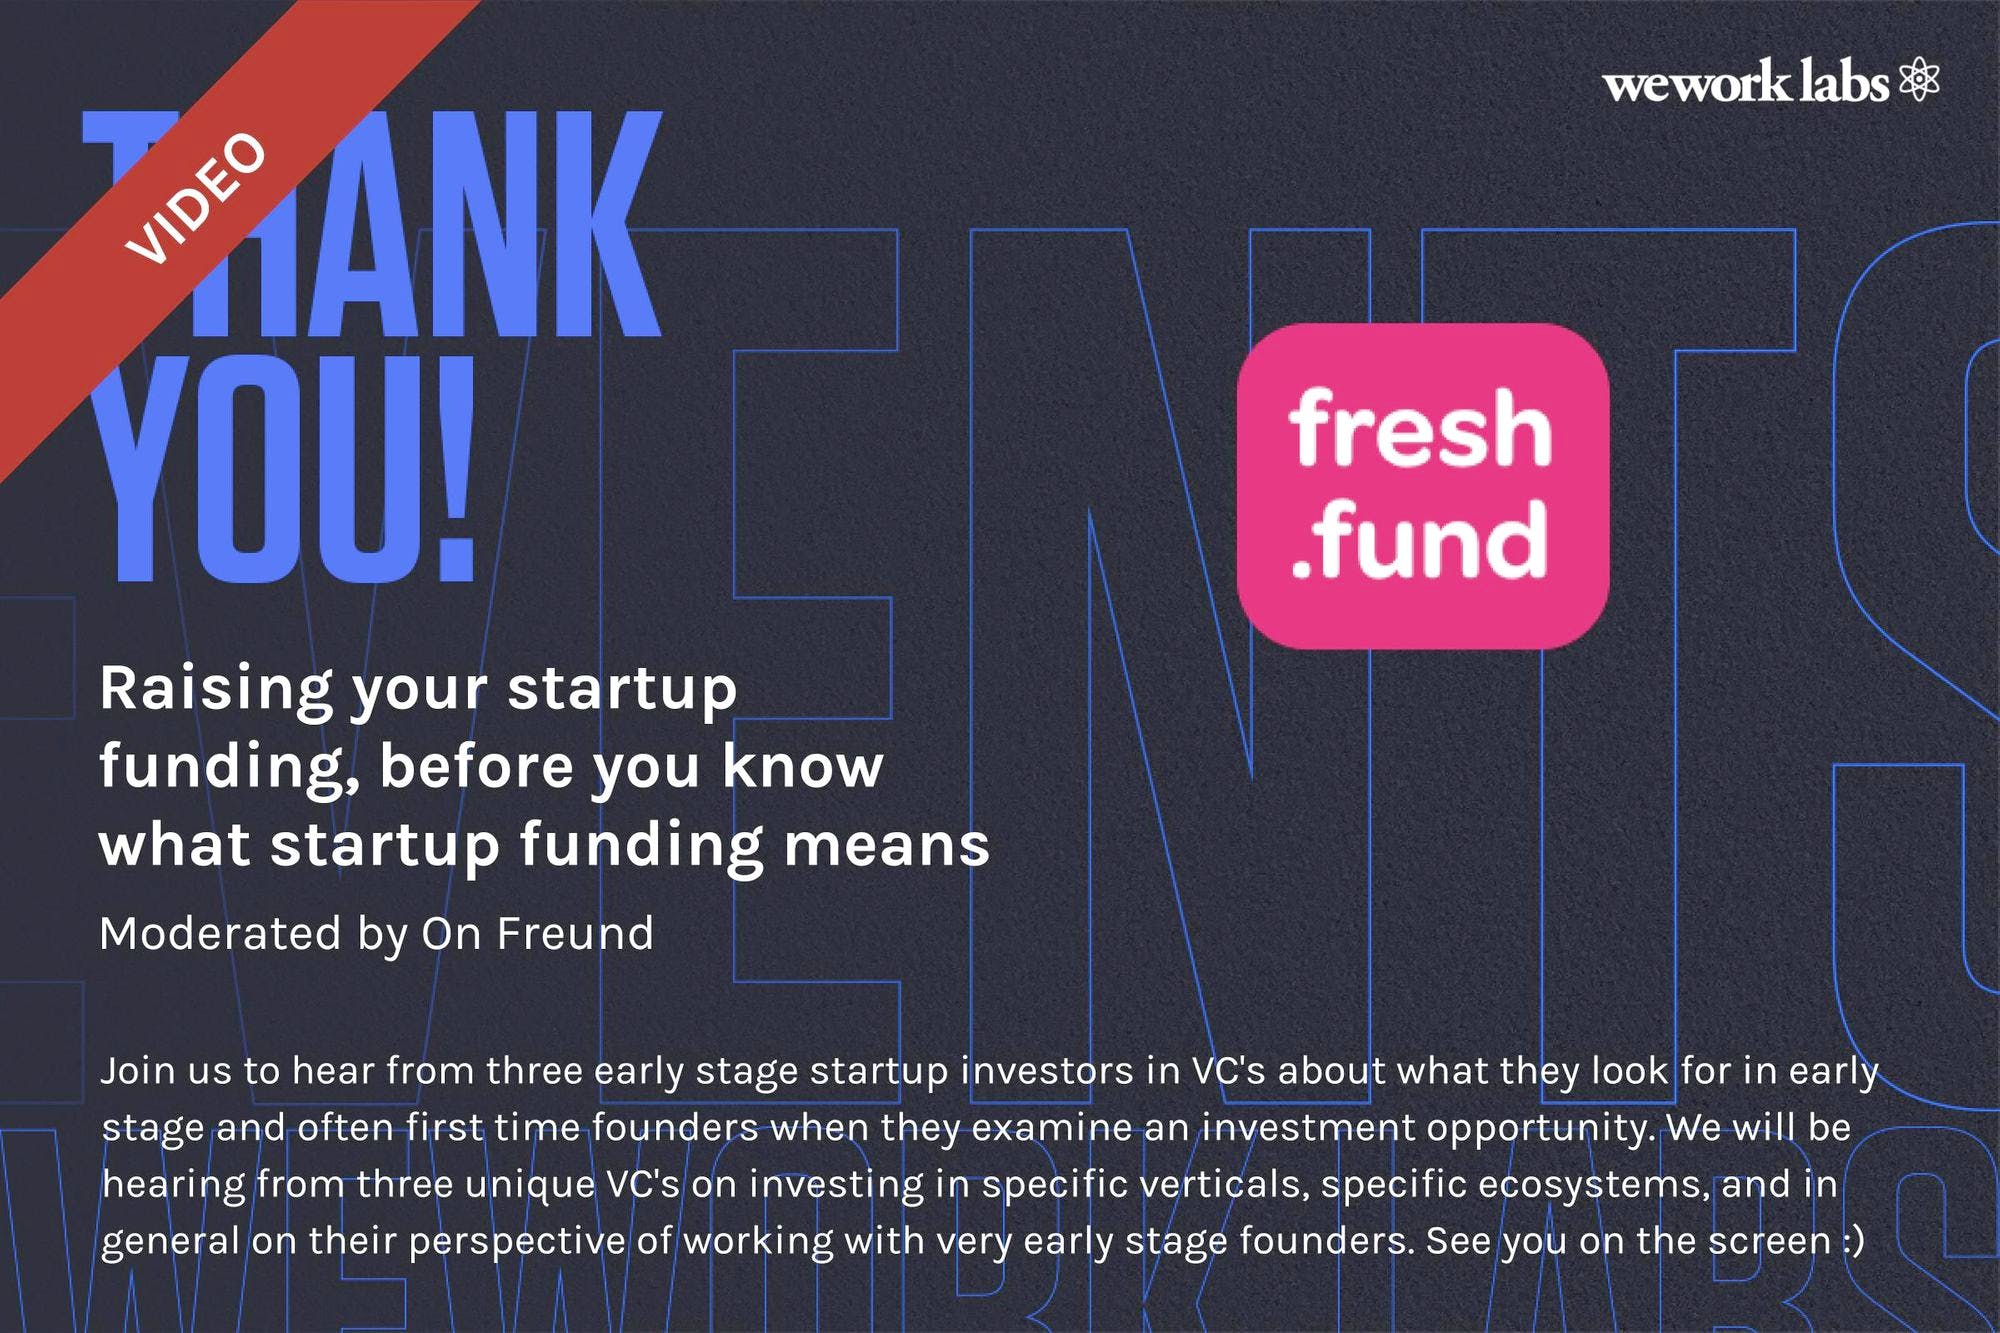 Raising your startup funding, before you know what startup funding means